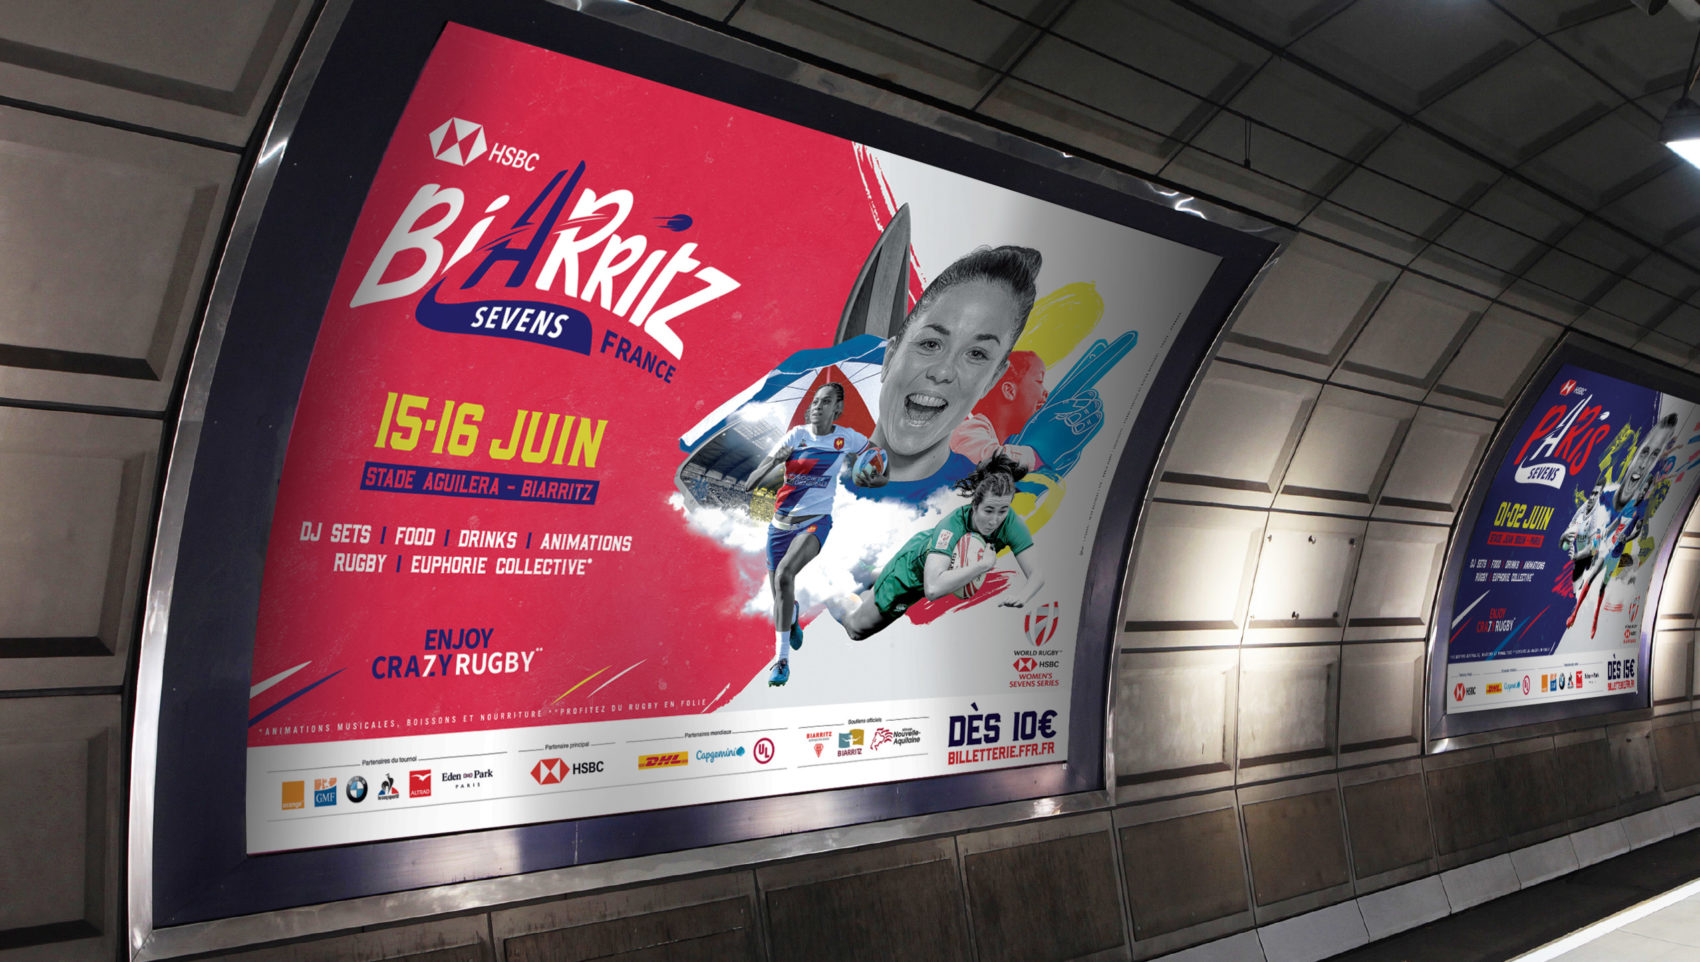 Projet_visuel_3_Federation_Francaise_Rugby_Paris_Biarritz_sevens_french_rugby